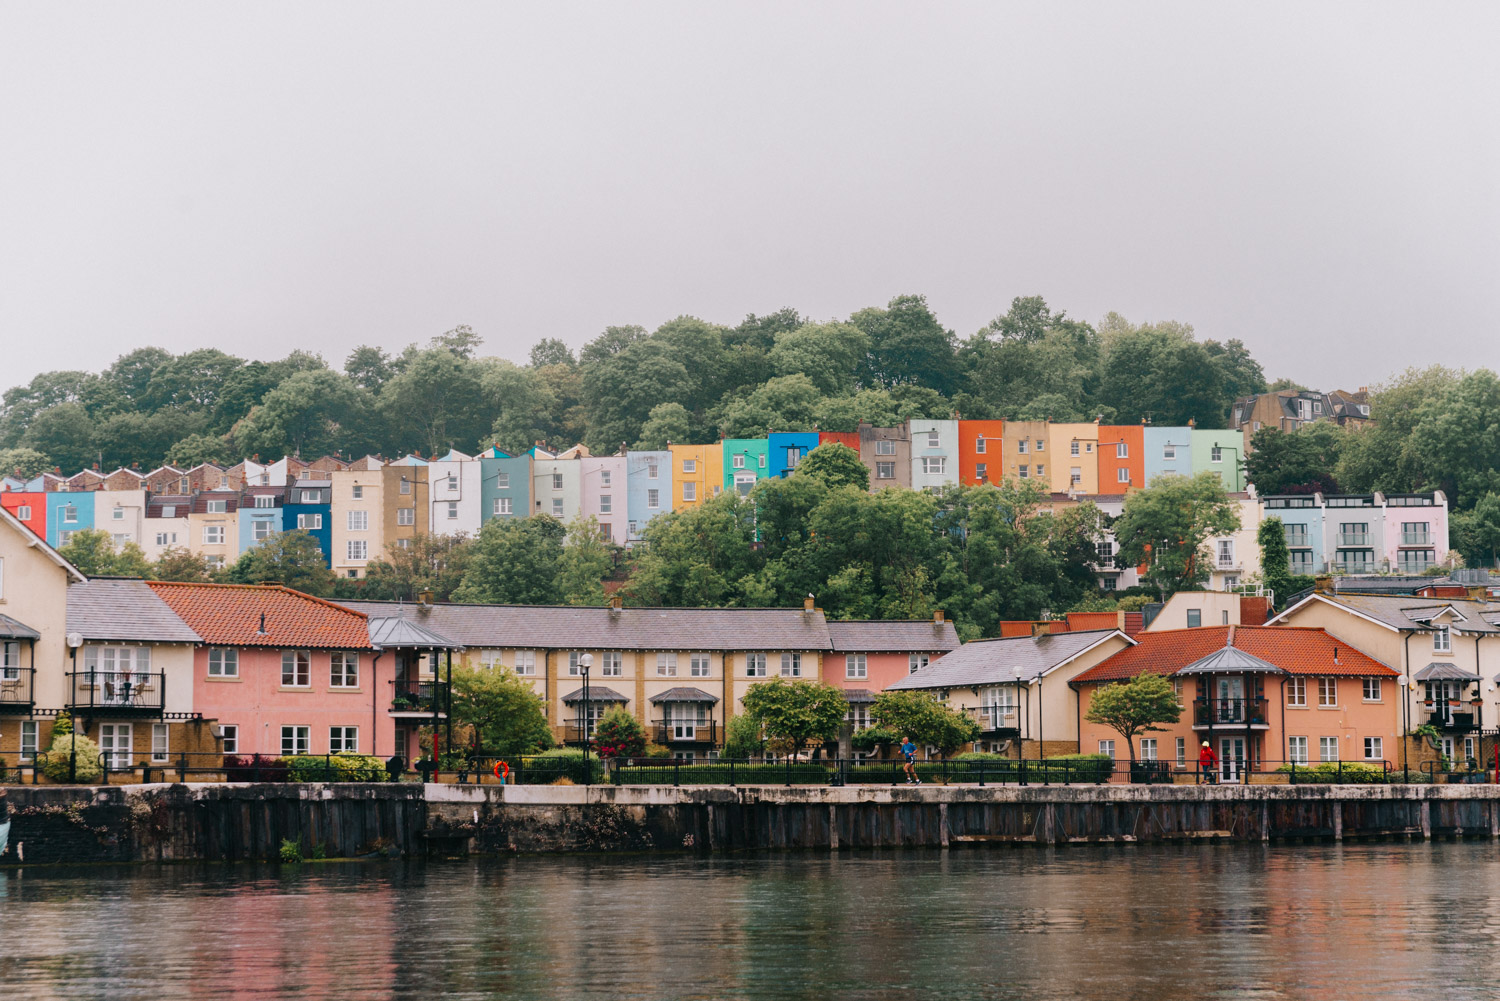 Colorful houses - Bristol's Harbourside | Travel Guide to Bristol